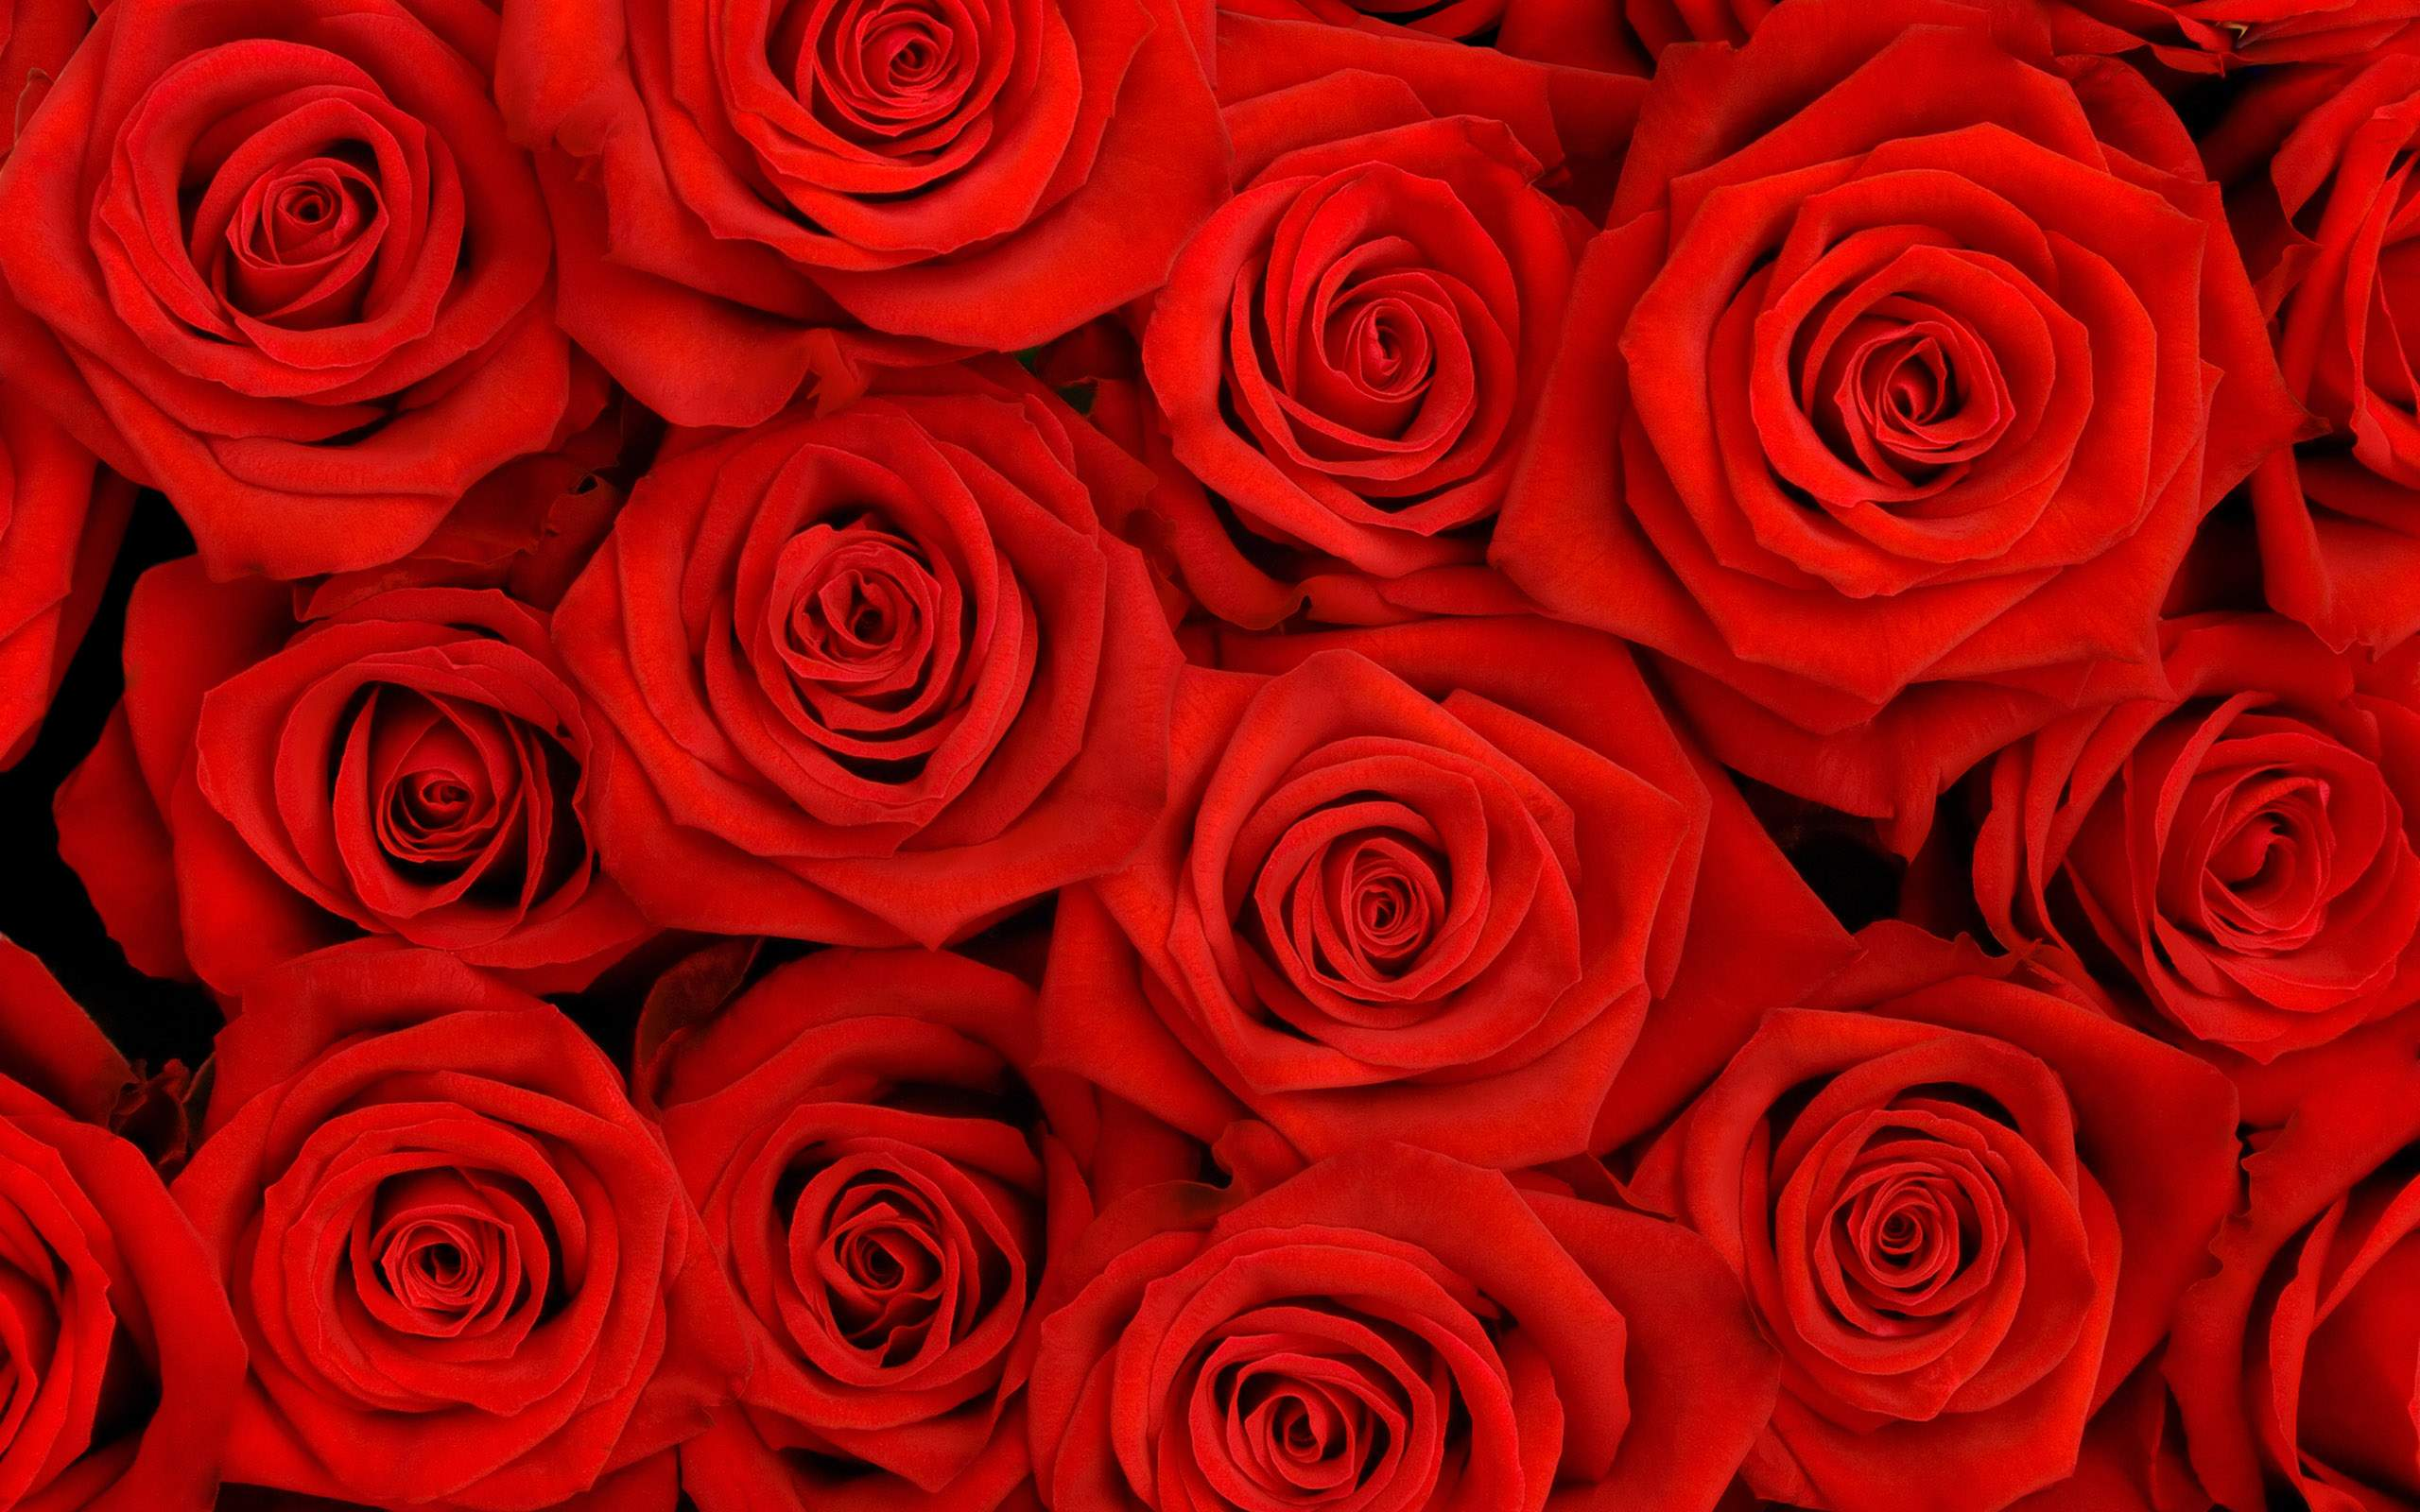 Red Flowers Wallpapers - Wallpaper Cave